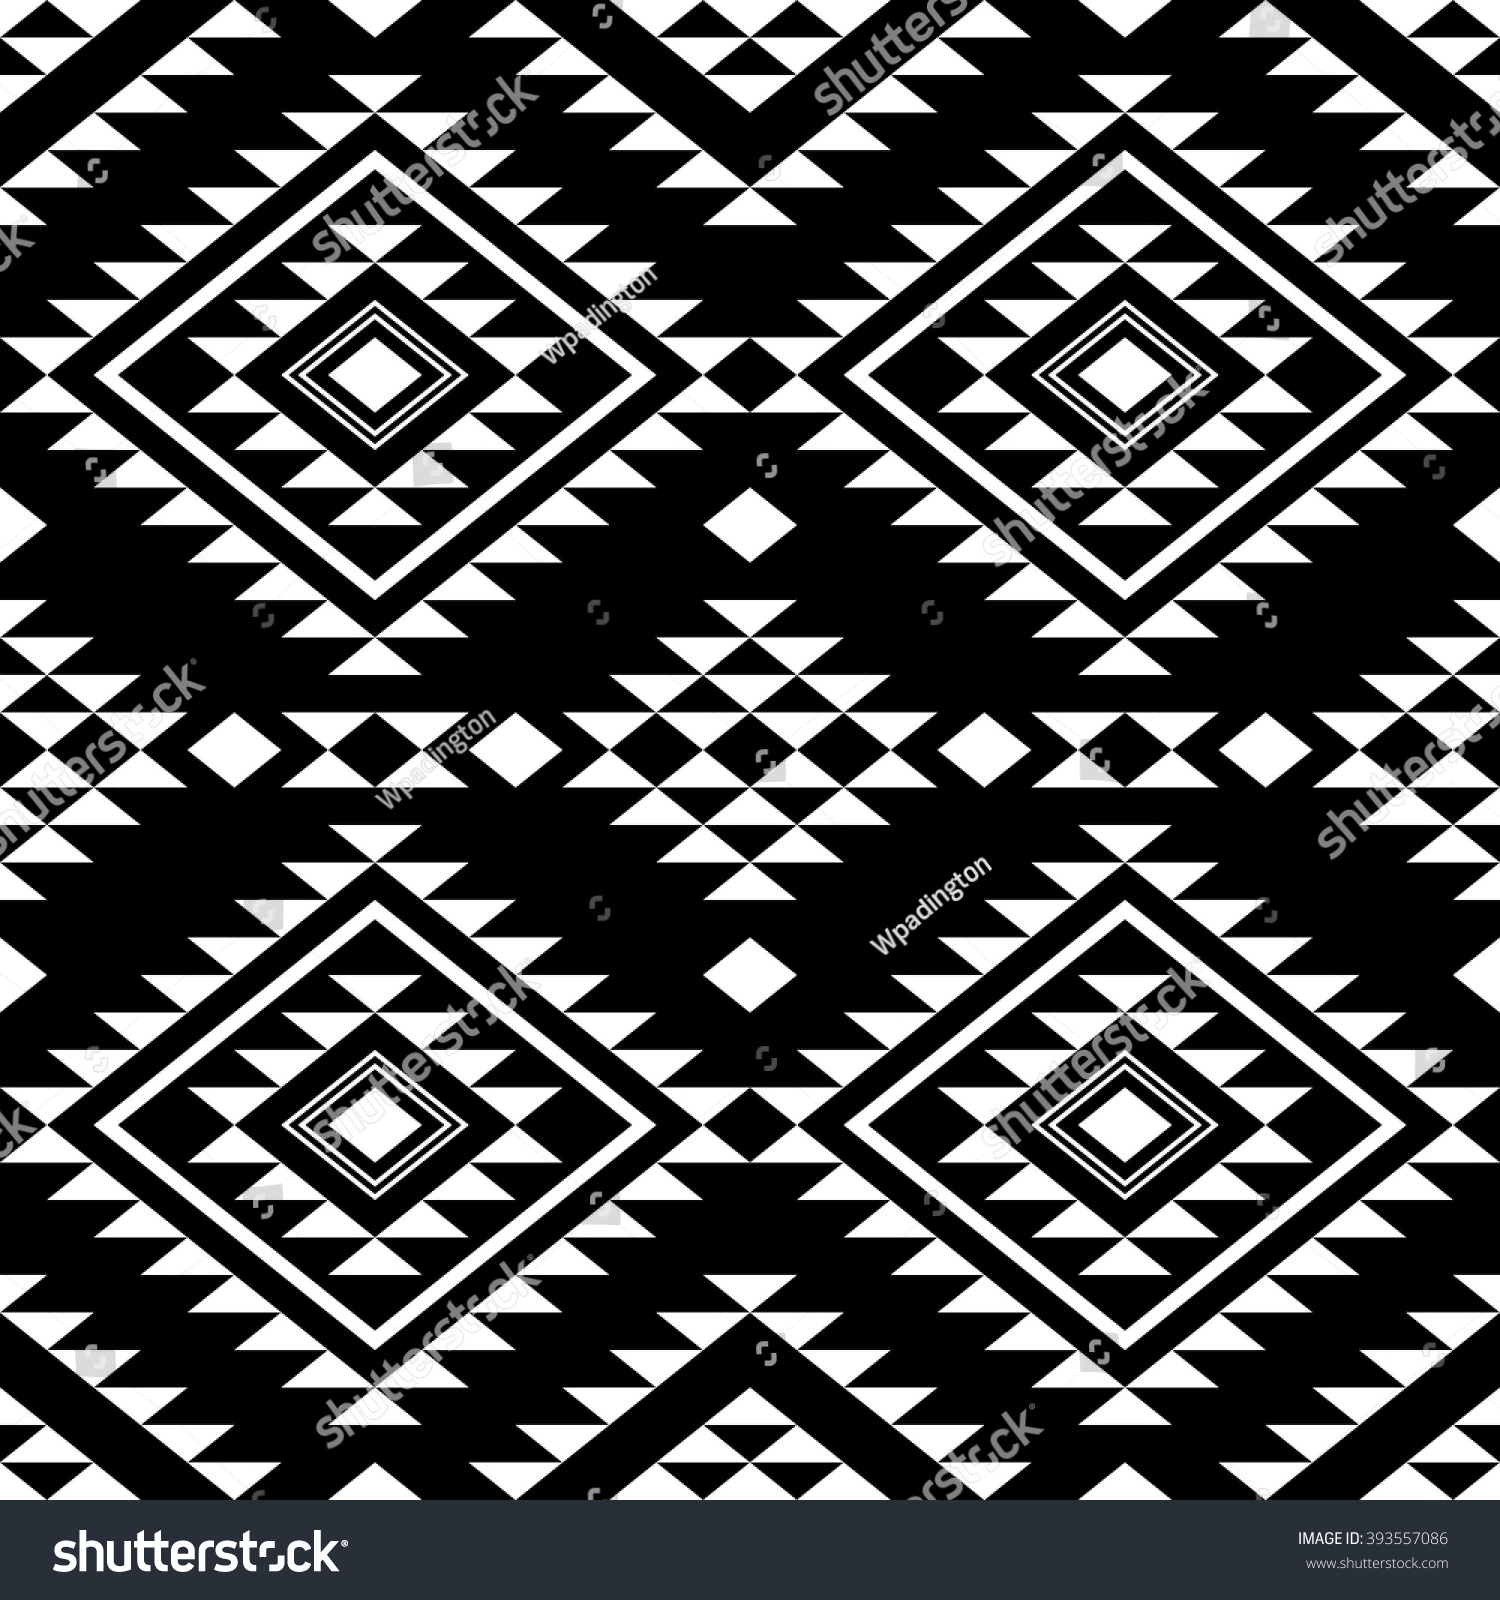 Seamless Pattern With Ethnic Aztec Ornament Abstract Wallpaper In Boho Chic Style Black And